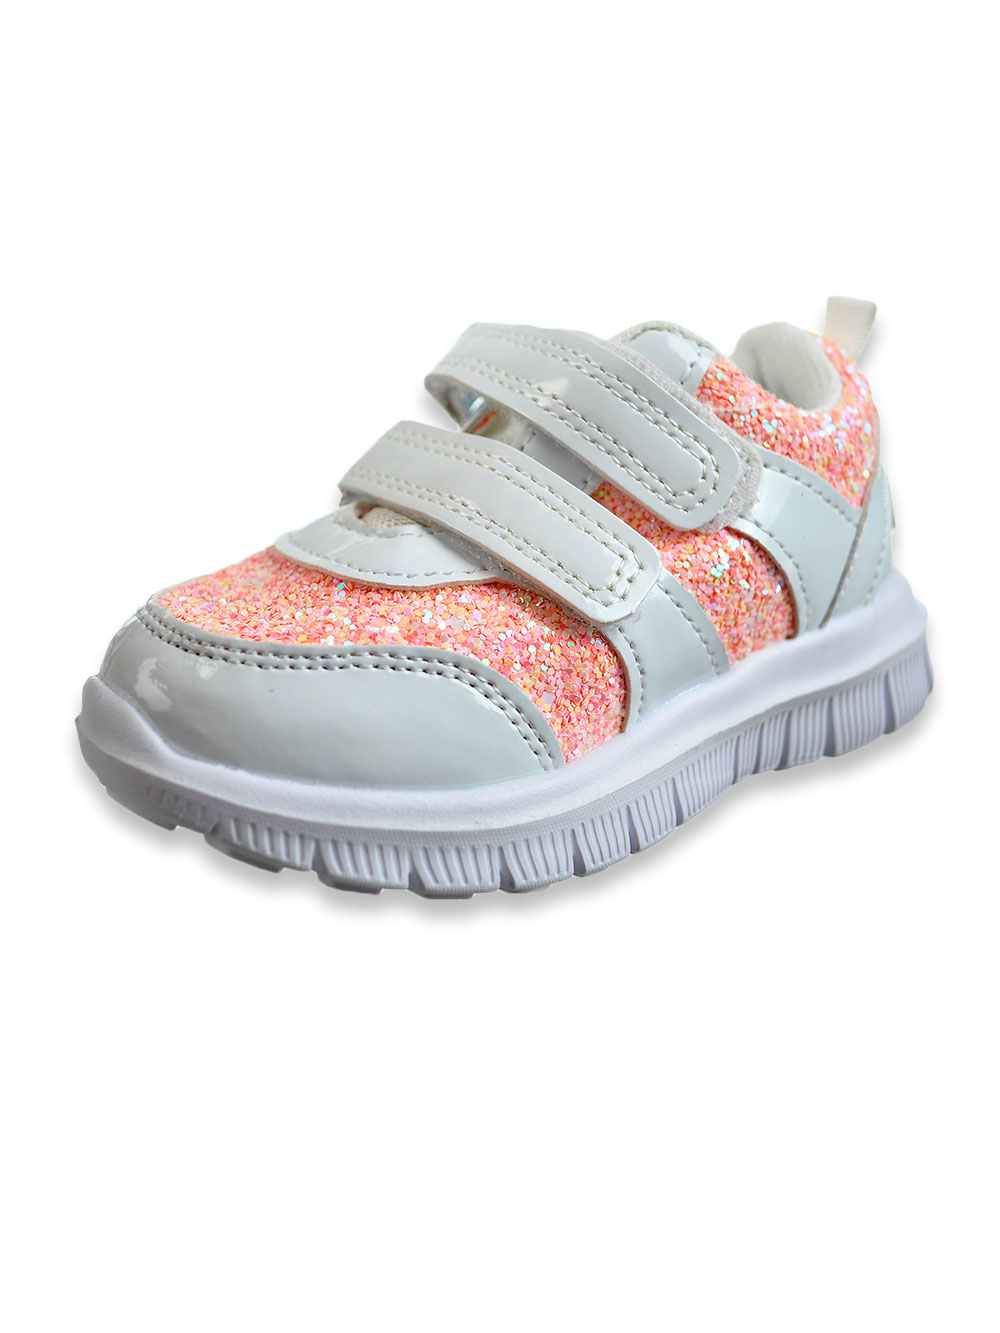 Girls White and Pink Sneakers